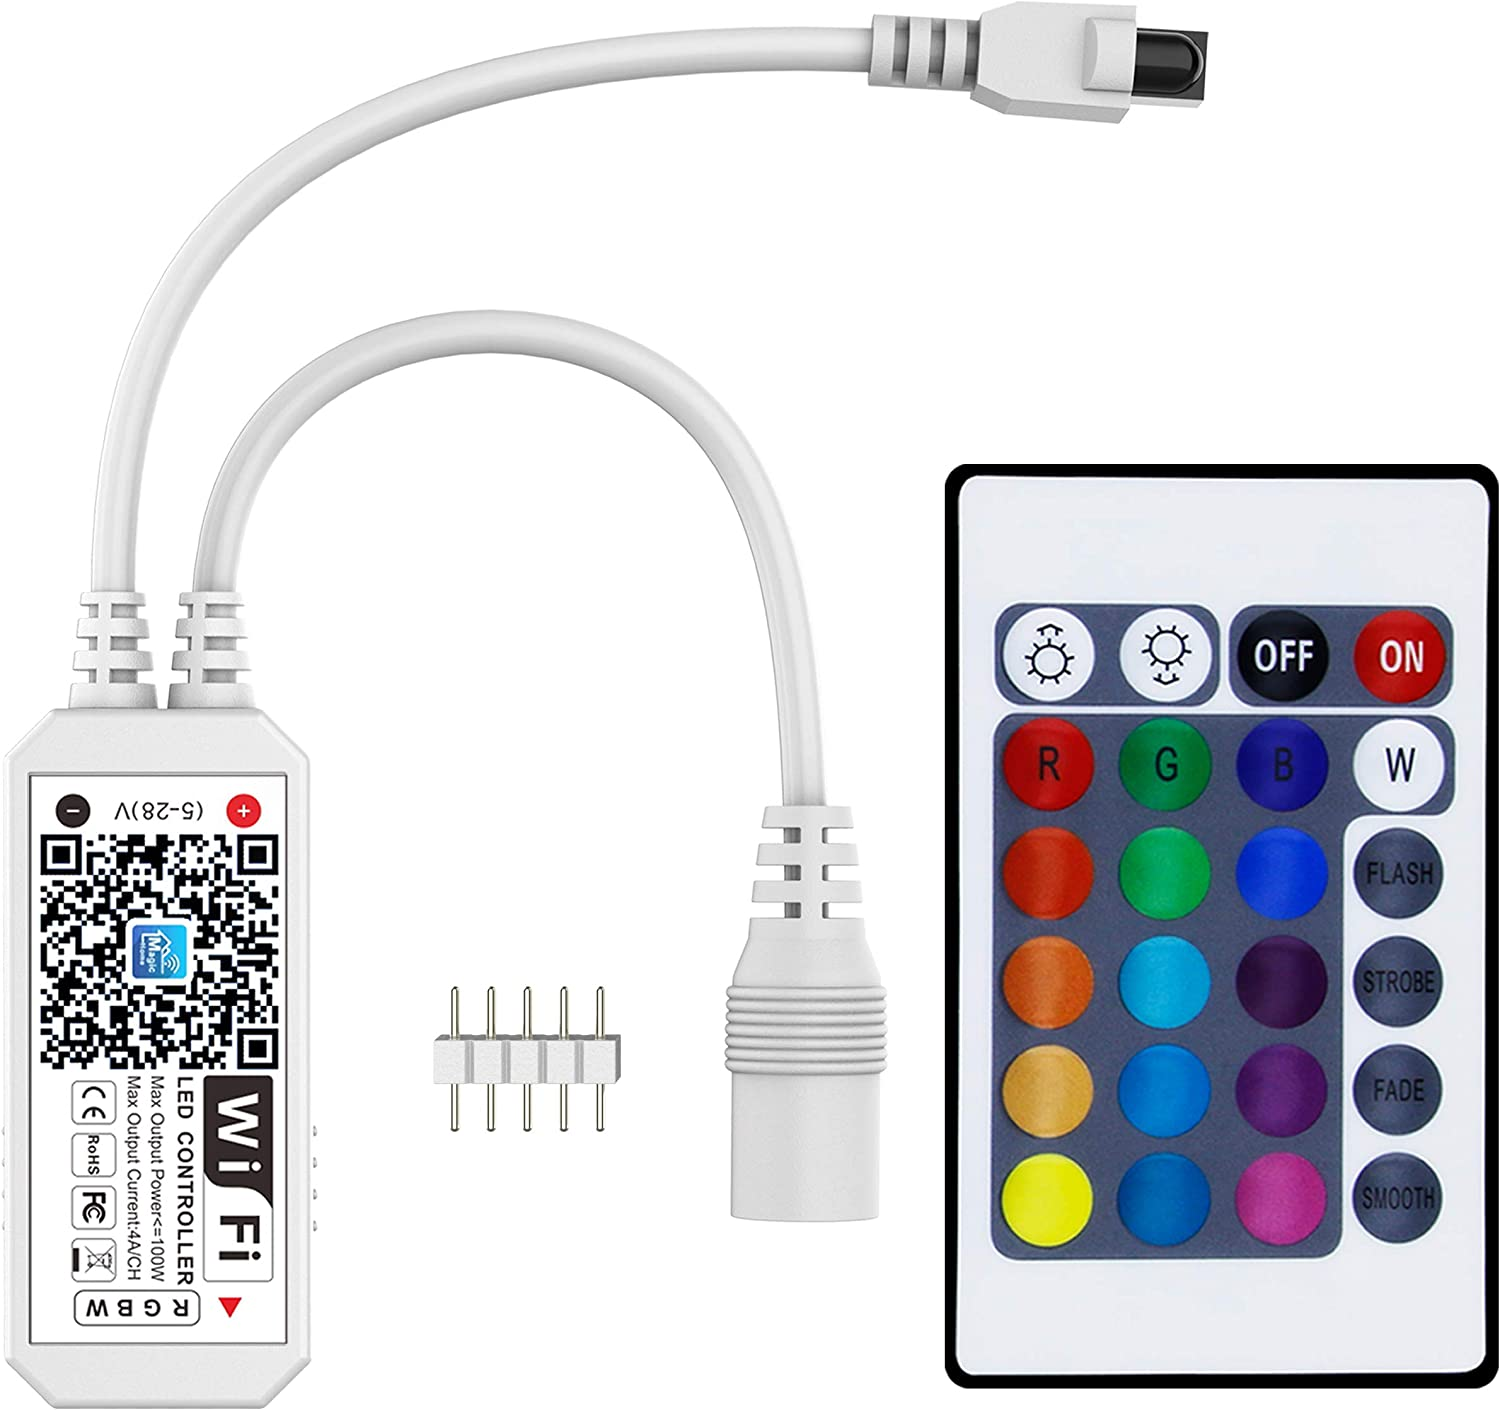 Smart WiFi RGBW LED Controller, Compatible with Alexa/Google Assistant, for 5050/3528 LED Strip Light, have 24 Key Remote Control,Support Android IOS System